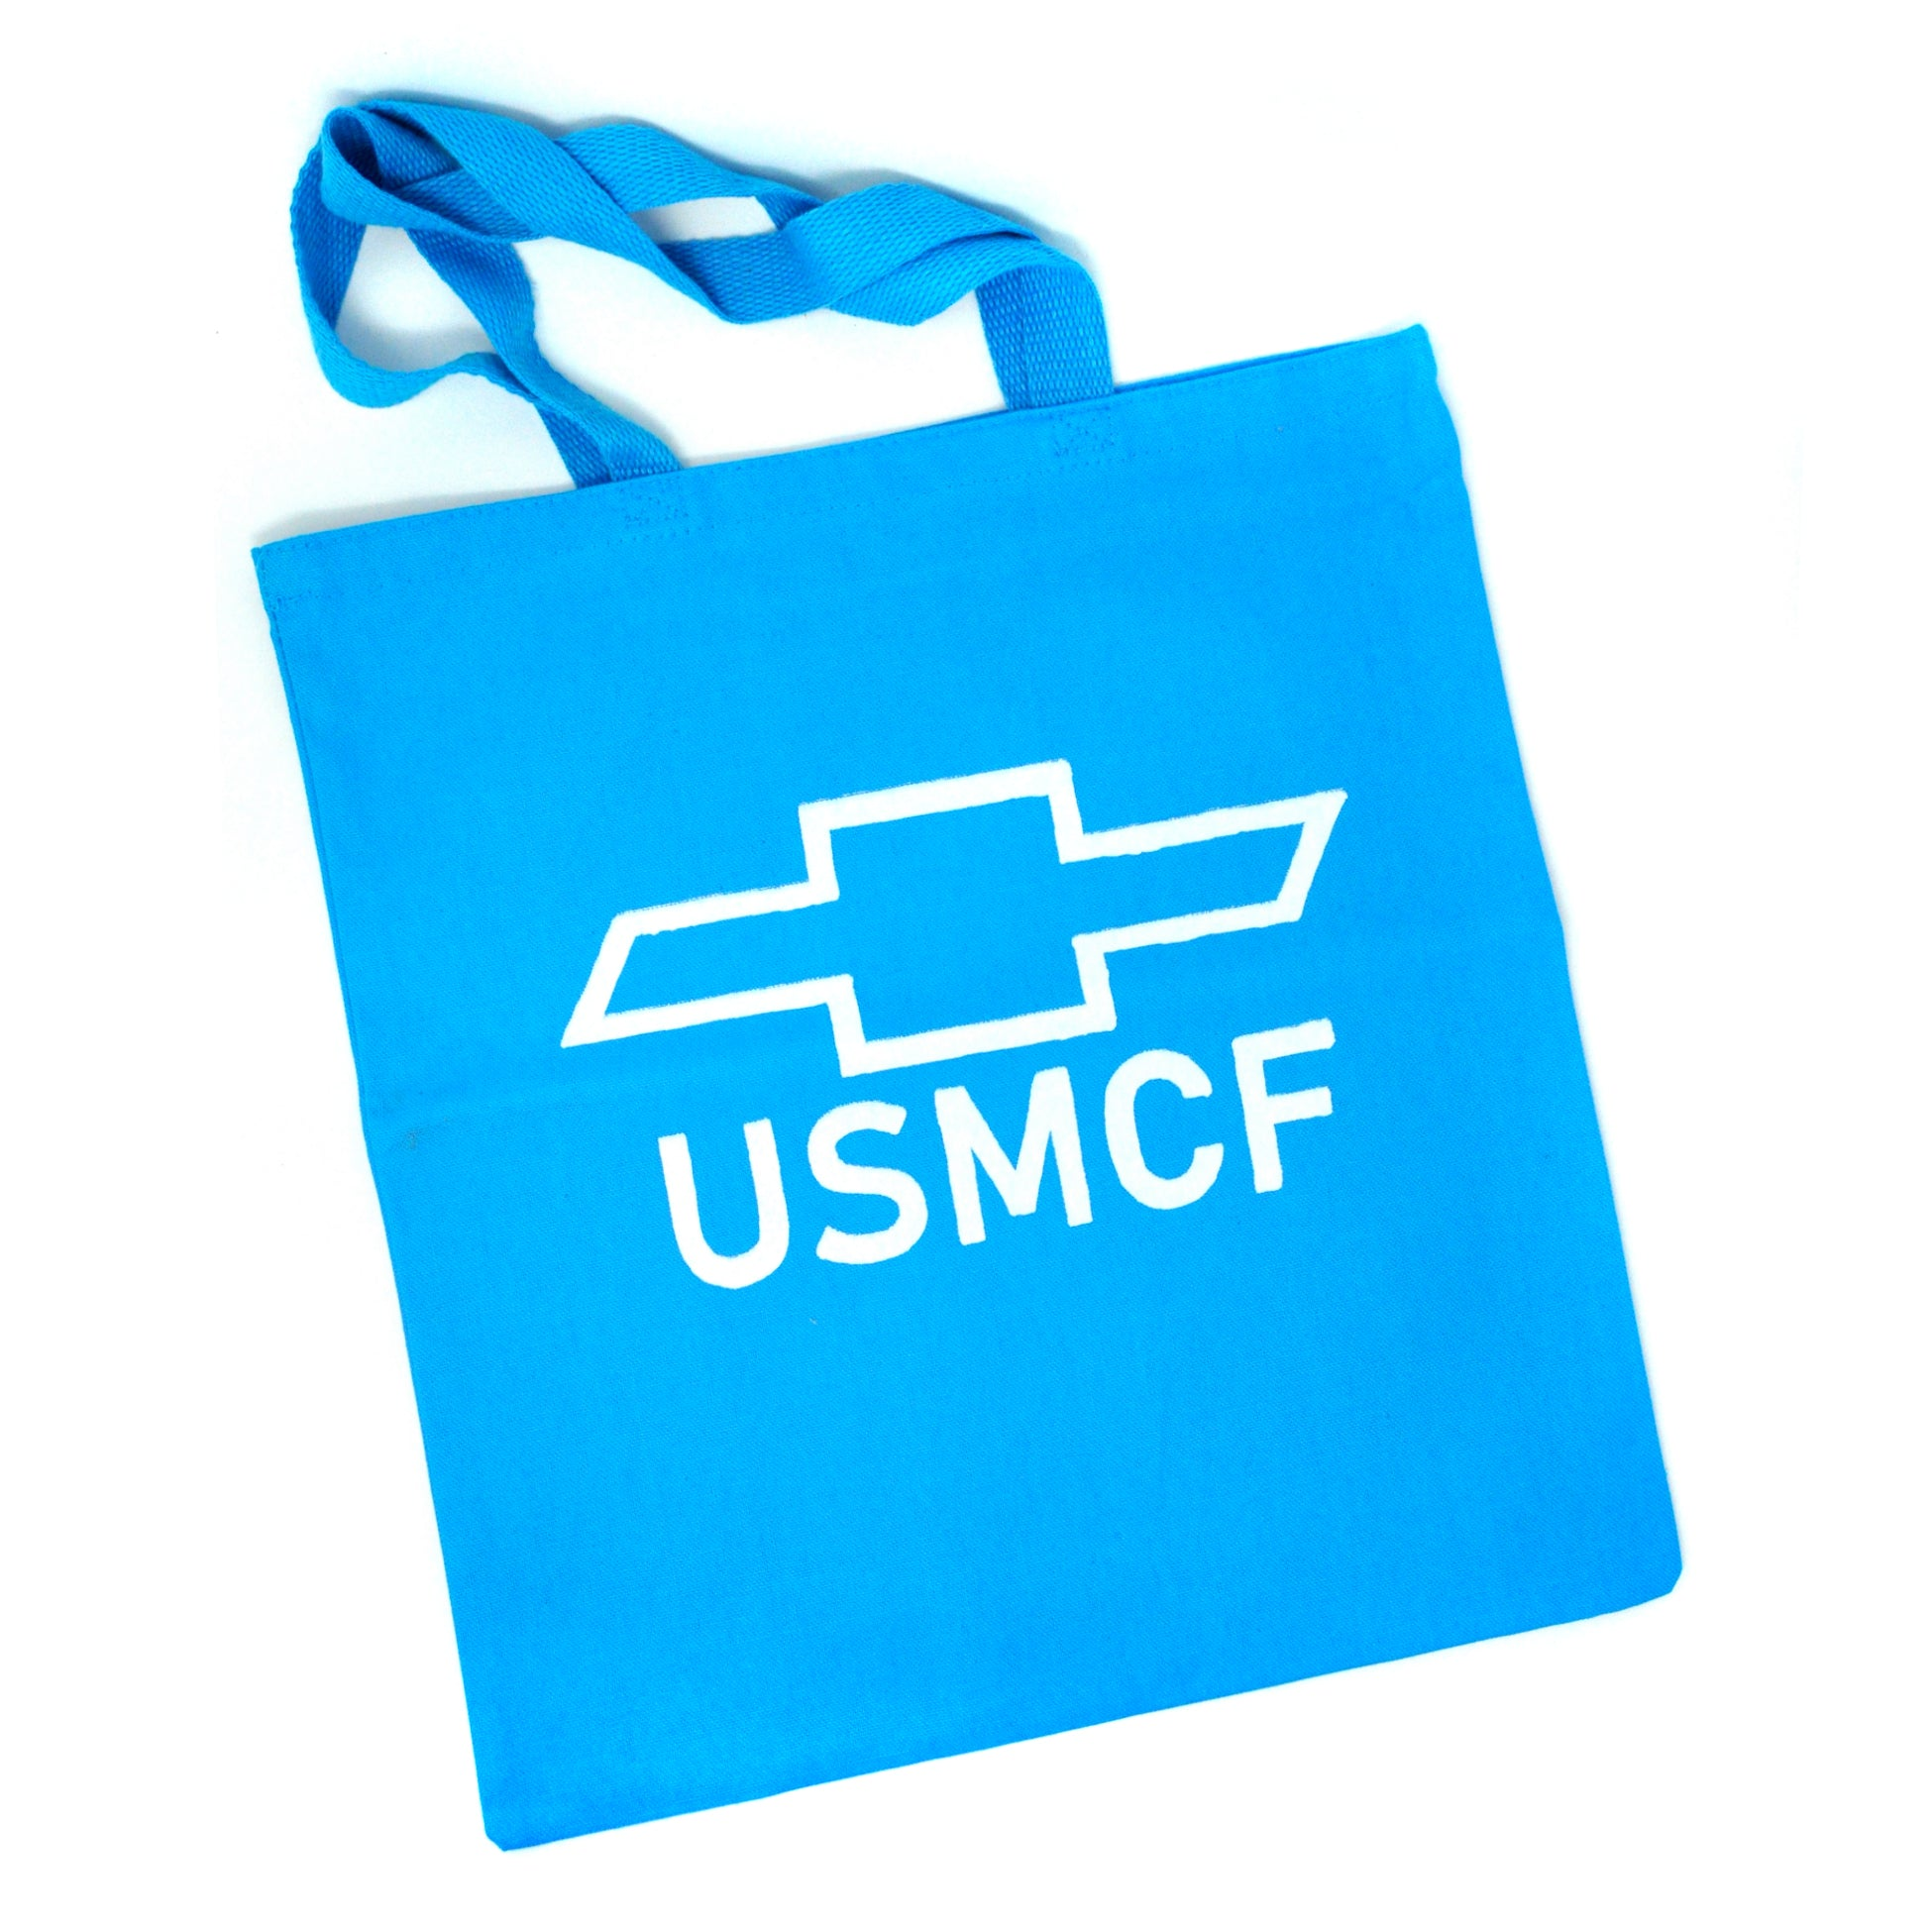 Tote Bag: USMCF (White on Blue)